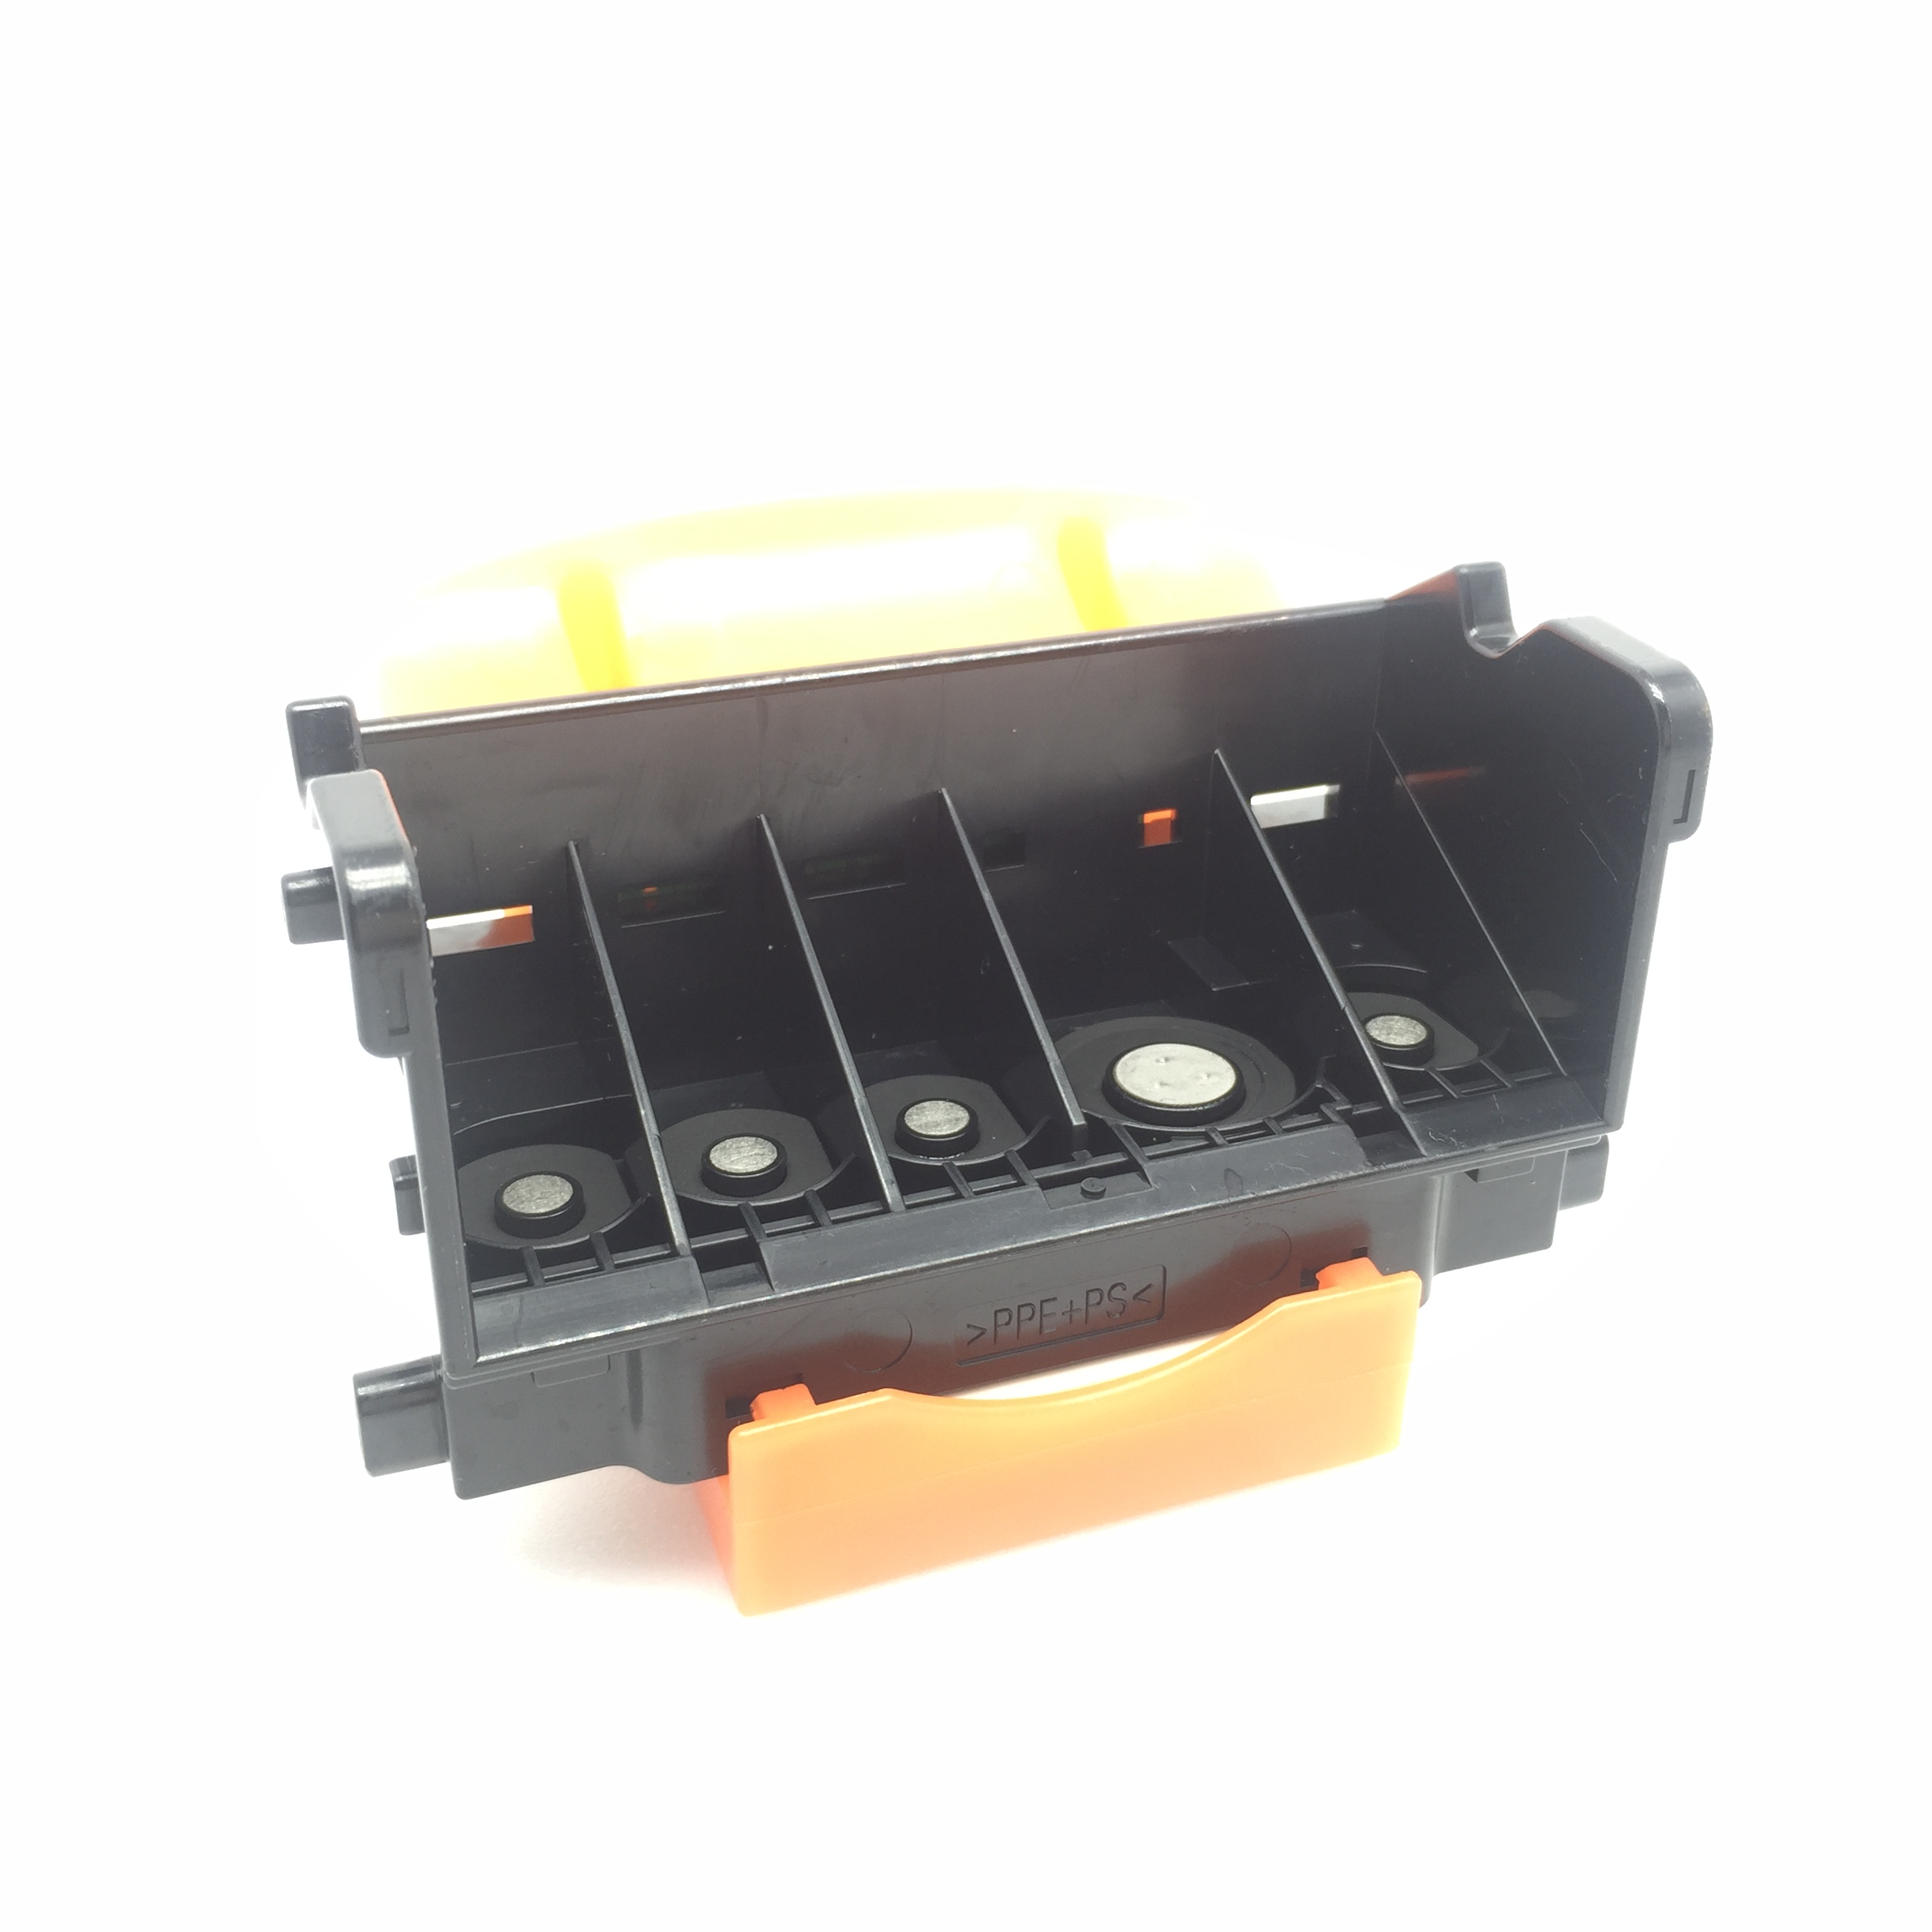 <font><b>QY6</b></font>-<font><b>0080</b></font> refurbished Printhead for Canon IP4820 MX892 MG5320 IX6510 6560 MX882 886 Printer only guarantee the quality of black. image